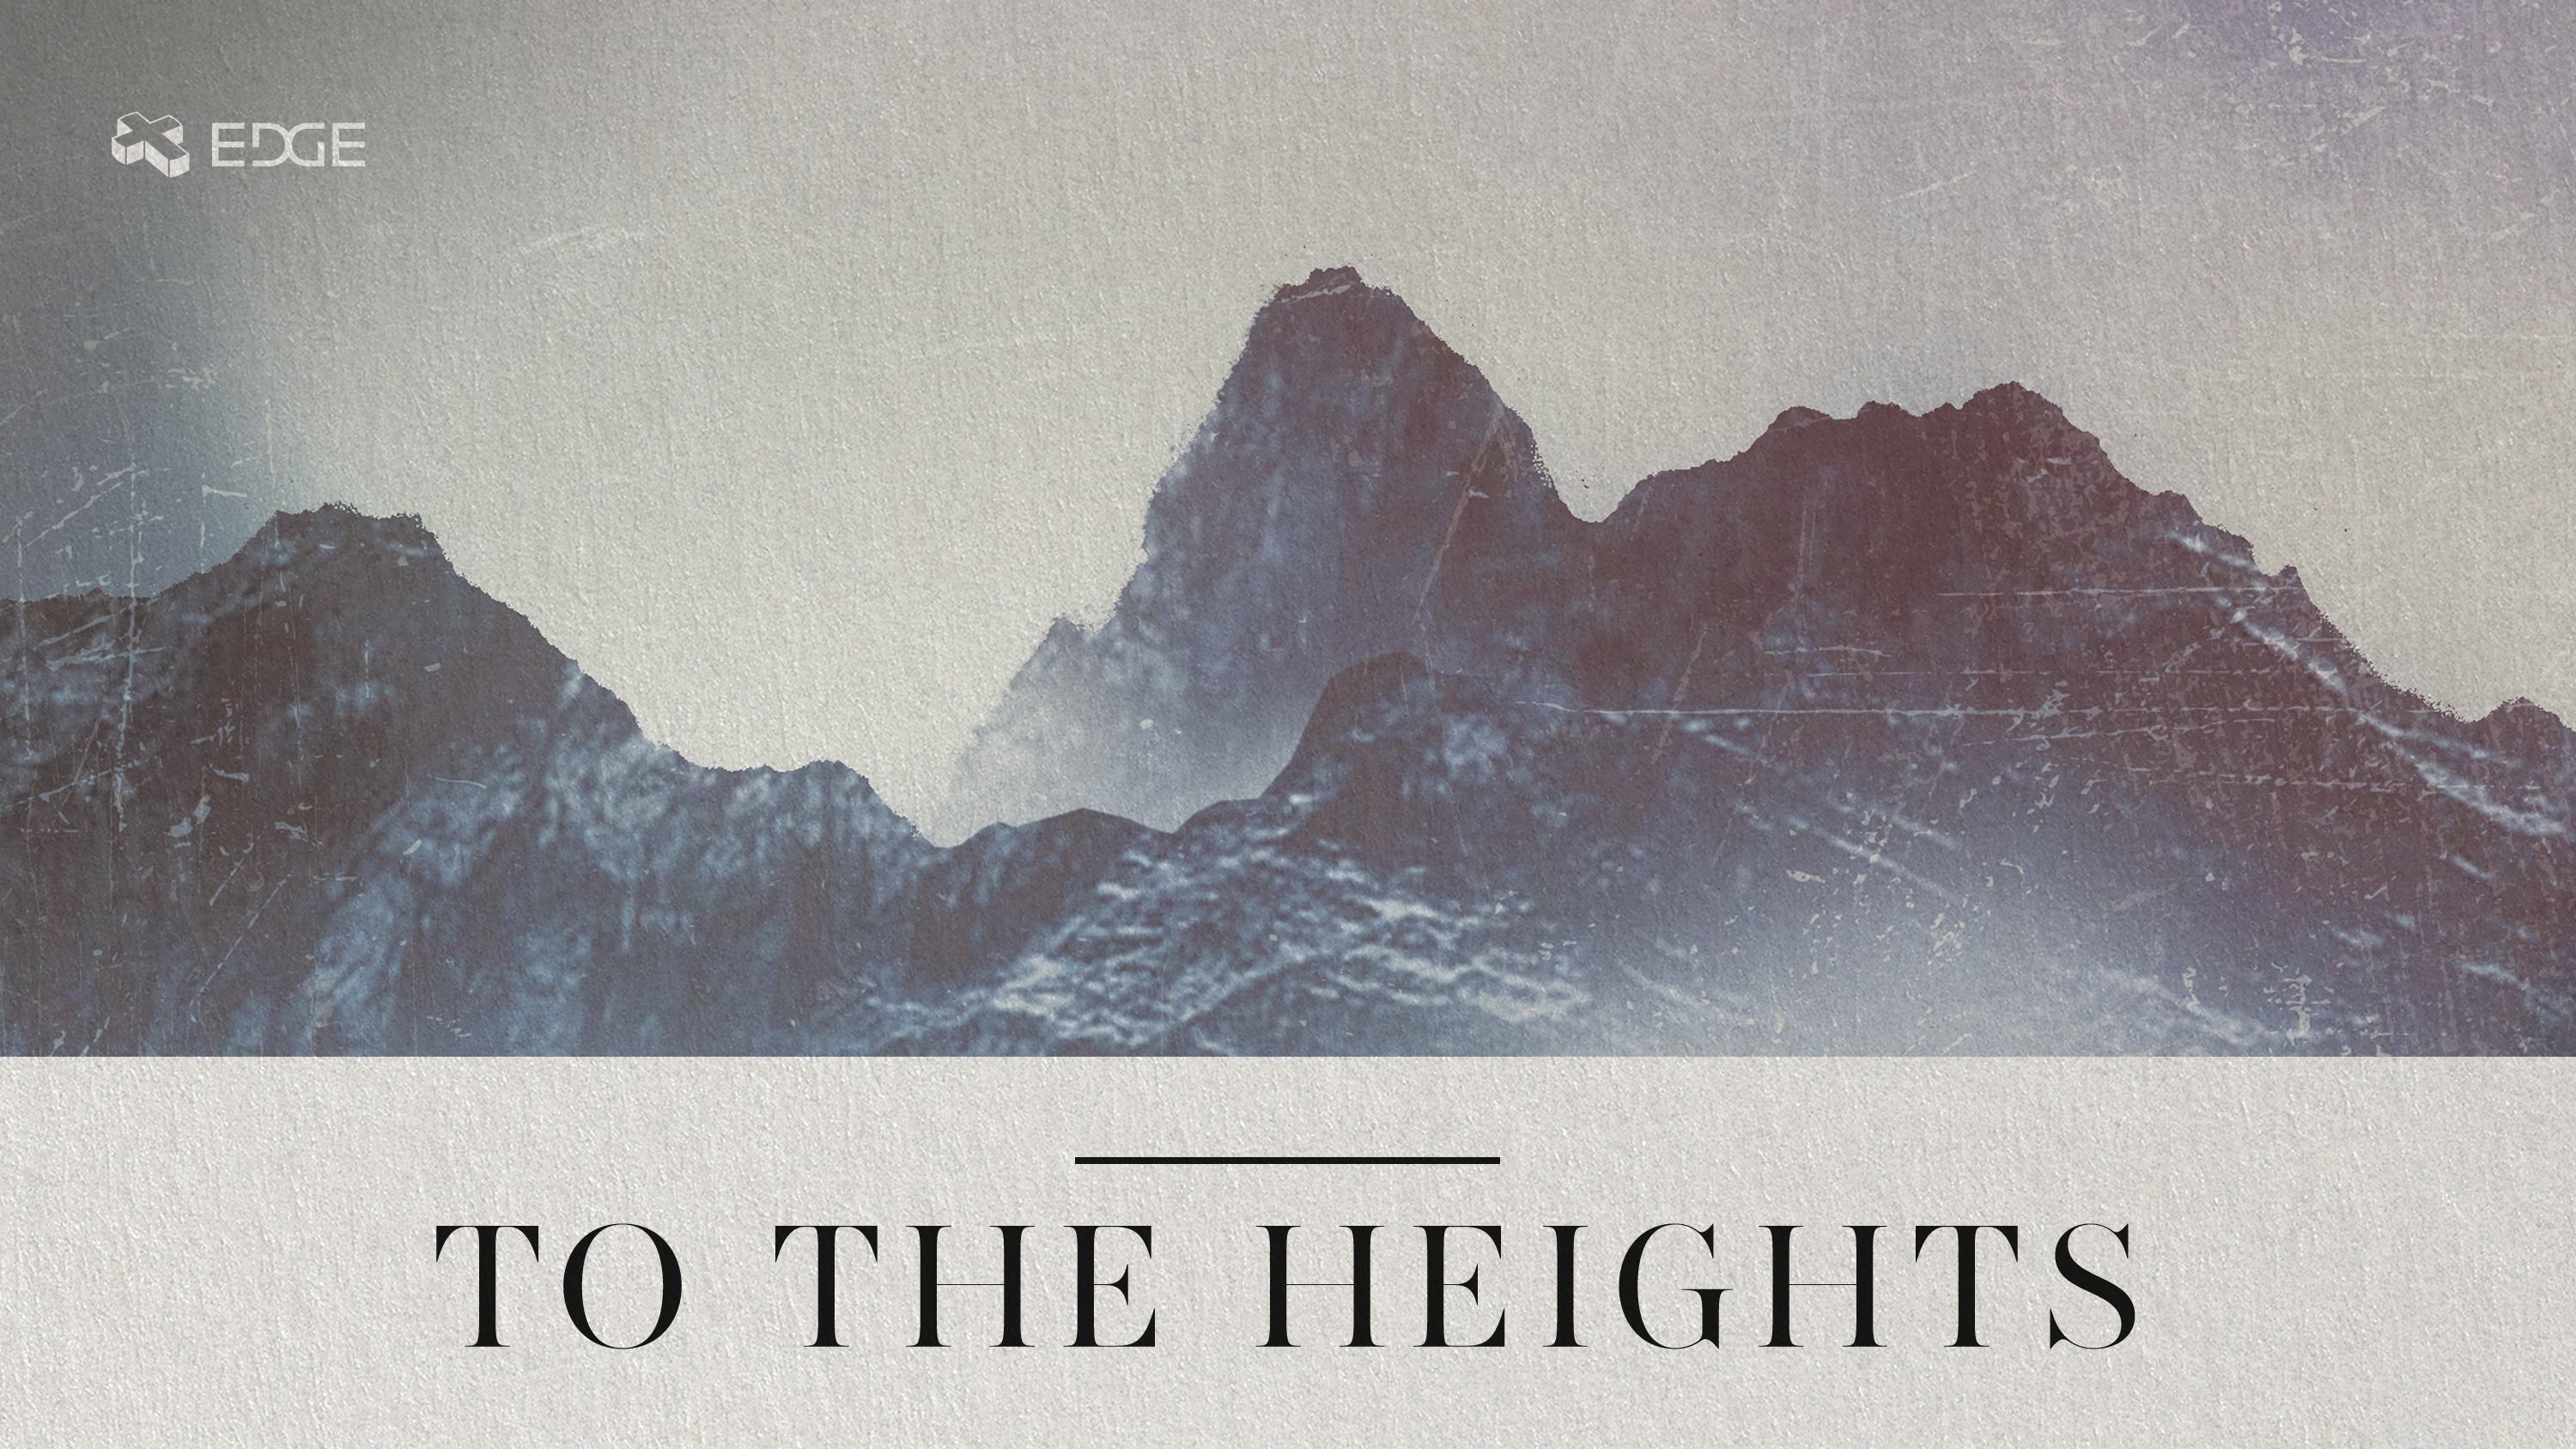 To the Heights!